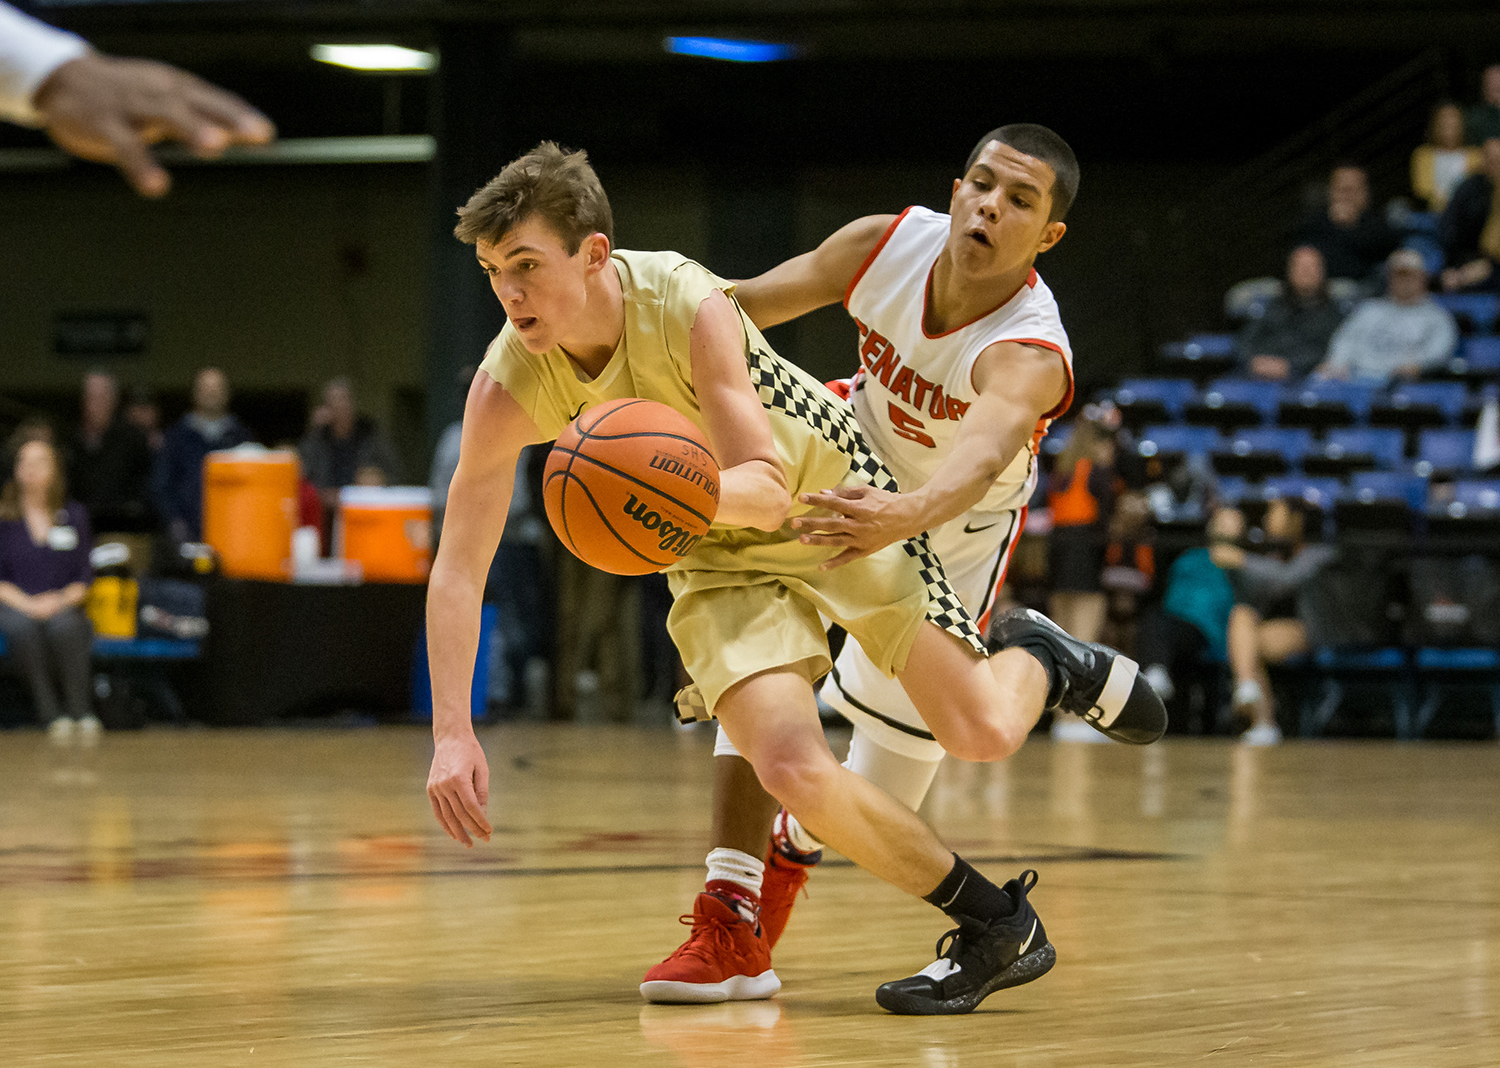 Sacred Heart-Griffin's Jack Thoma (22) dribbles around the pressure from Springfield's Shane Miller (5) in the second quarter on opening night of the Boys City Tournament at the Bank of Springfield Center, Wednesday, Jan. 16, 2019, in Springfield, Ill. [Justin L. Fowler/The State Journal-Register]